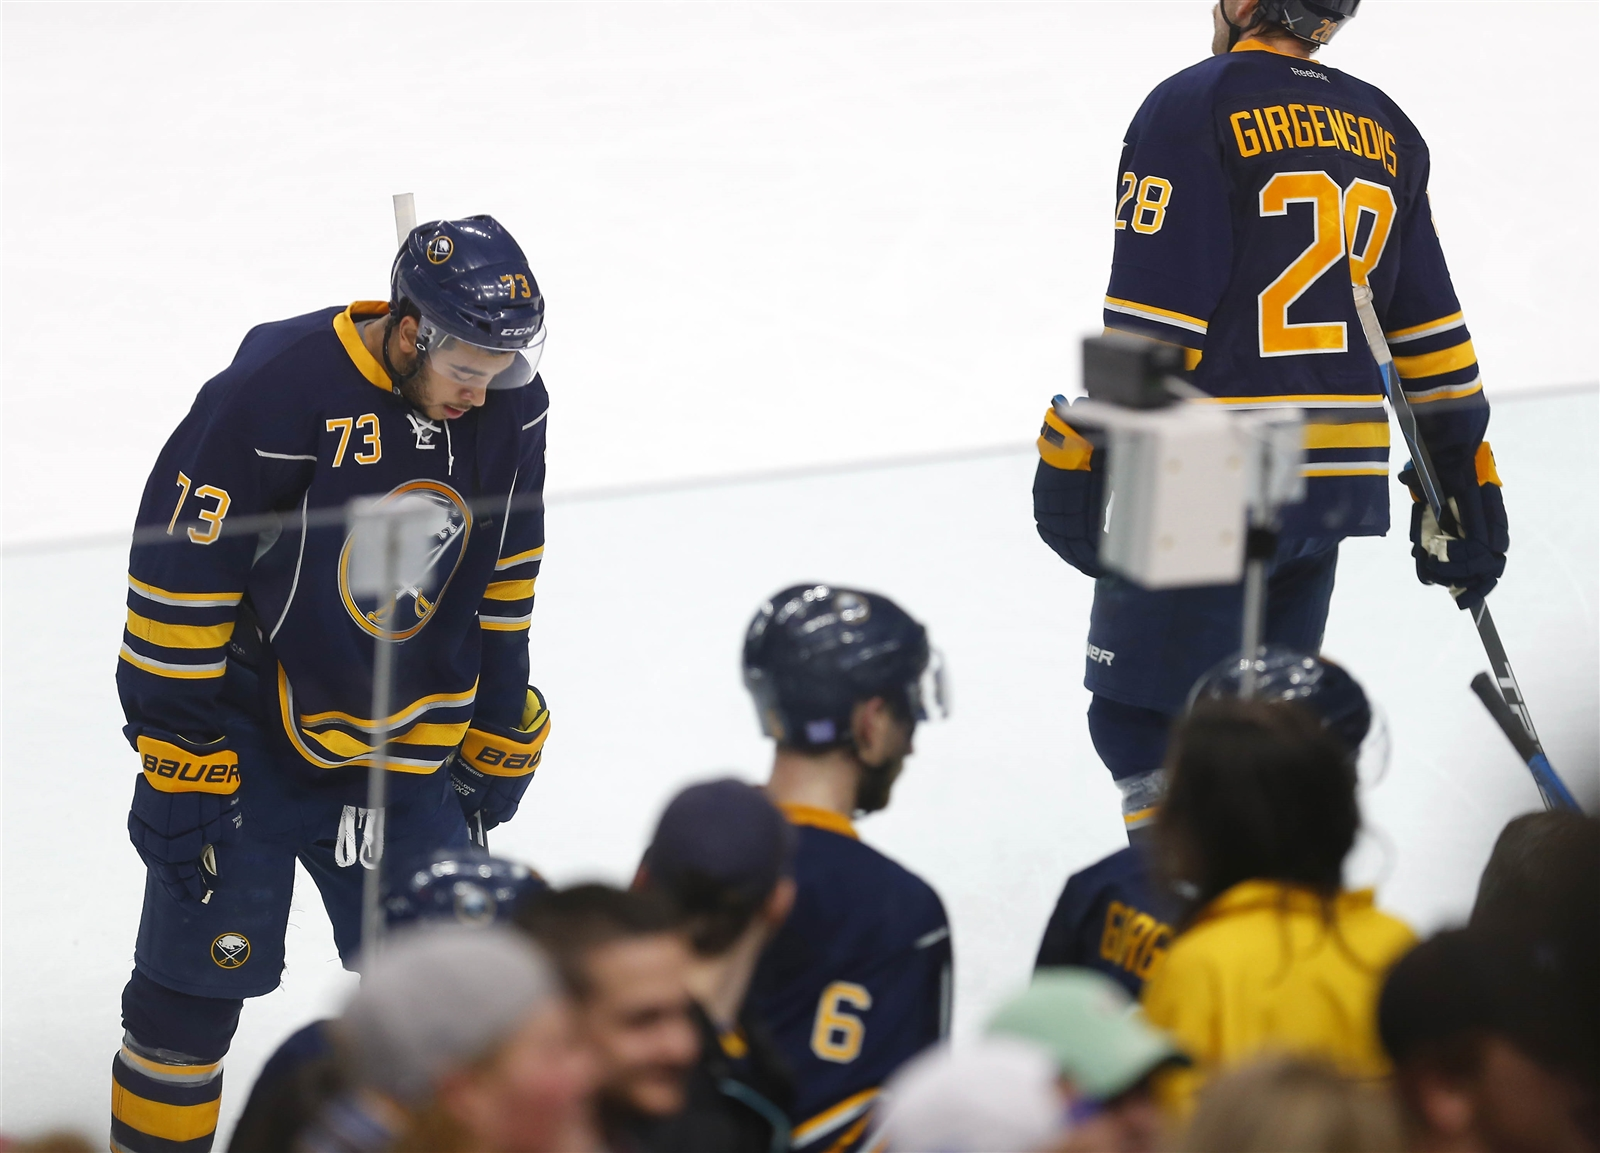 Buffalo Sabres Nicholas Baptiste, left, Zemgus Girgensons and their teammates leave the ice after losing, 4-1, to the Tampa Bay Lightning.